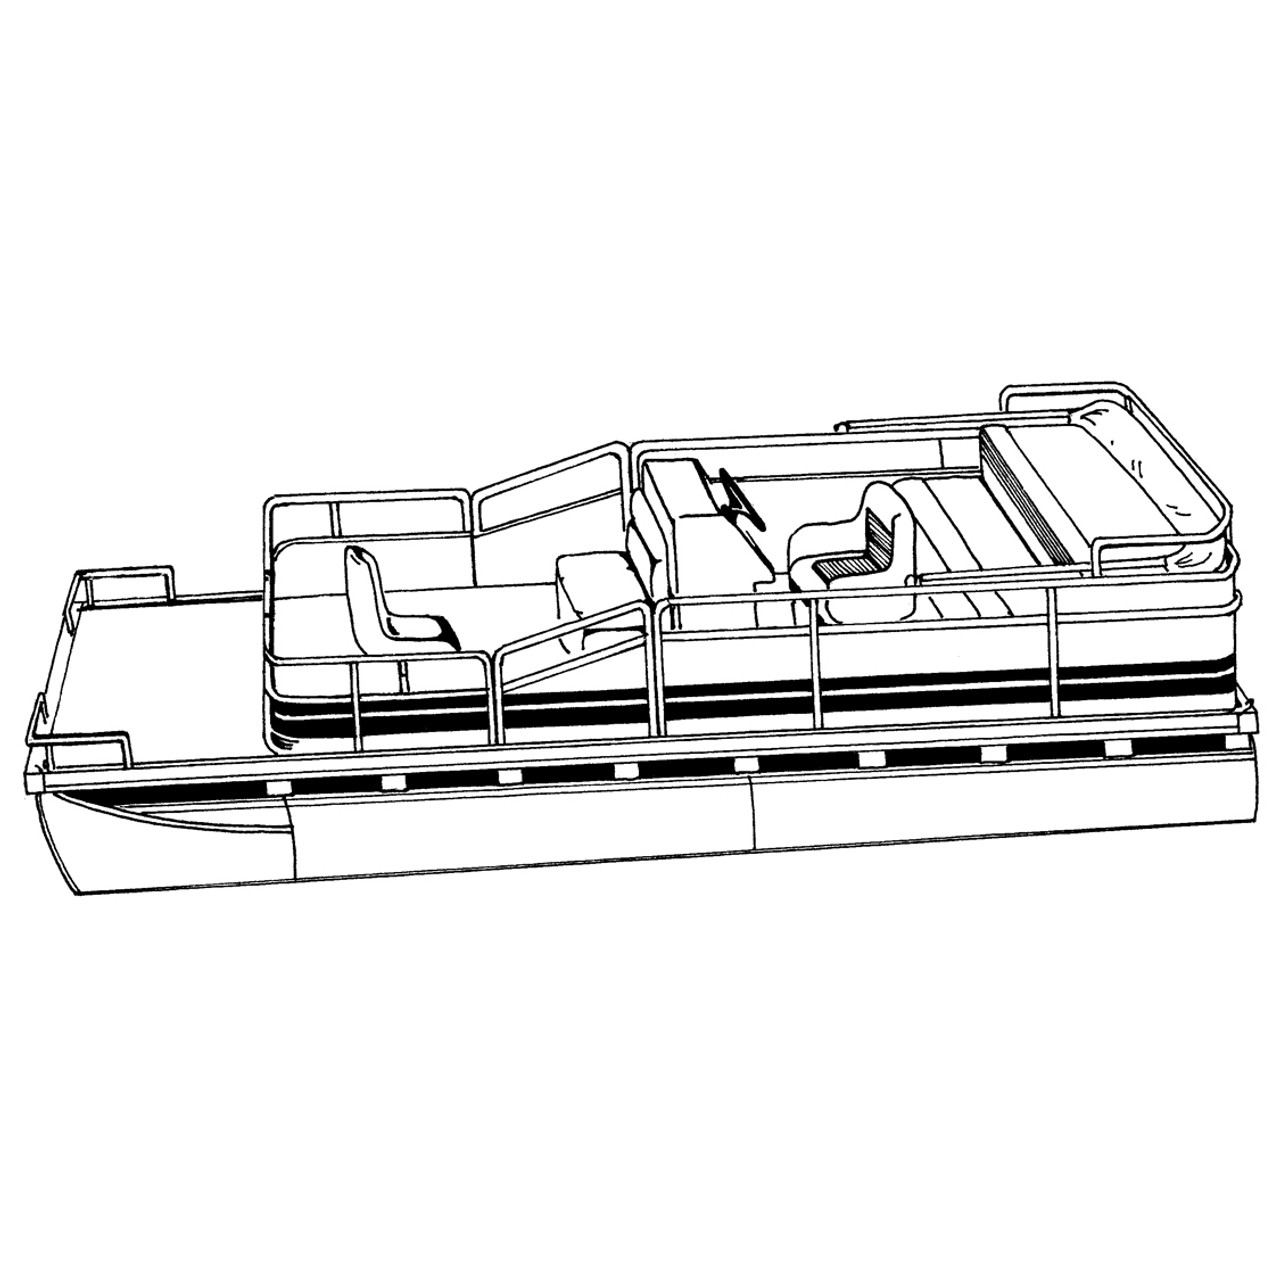 cover fits pontoon with bimini top and rails that partially enclose deck leaving 1  [ 1280 x 1280 Pixel ]